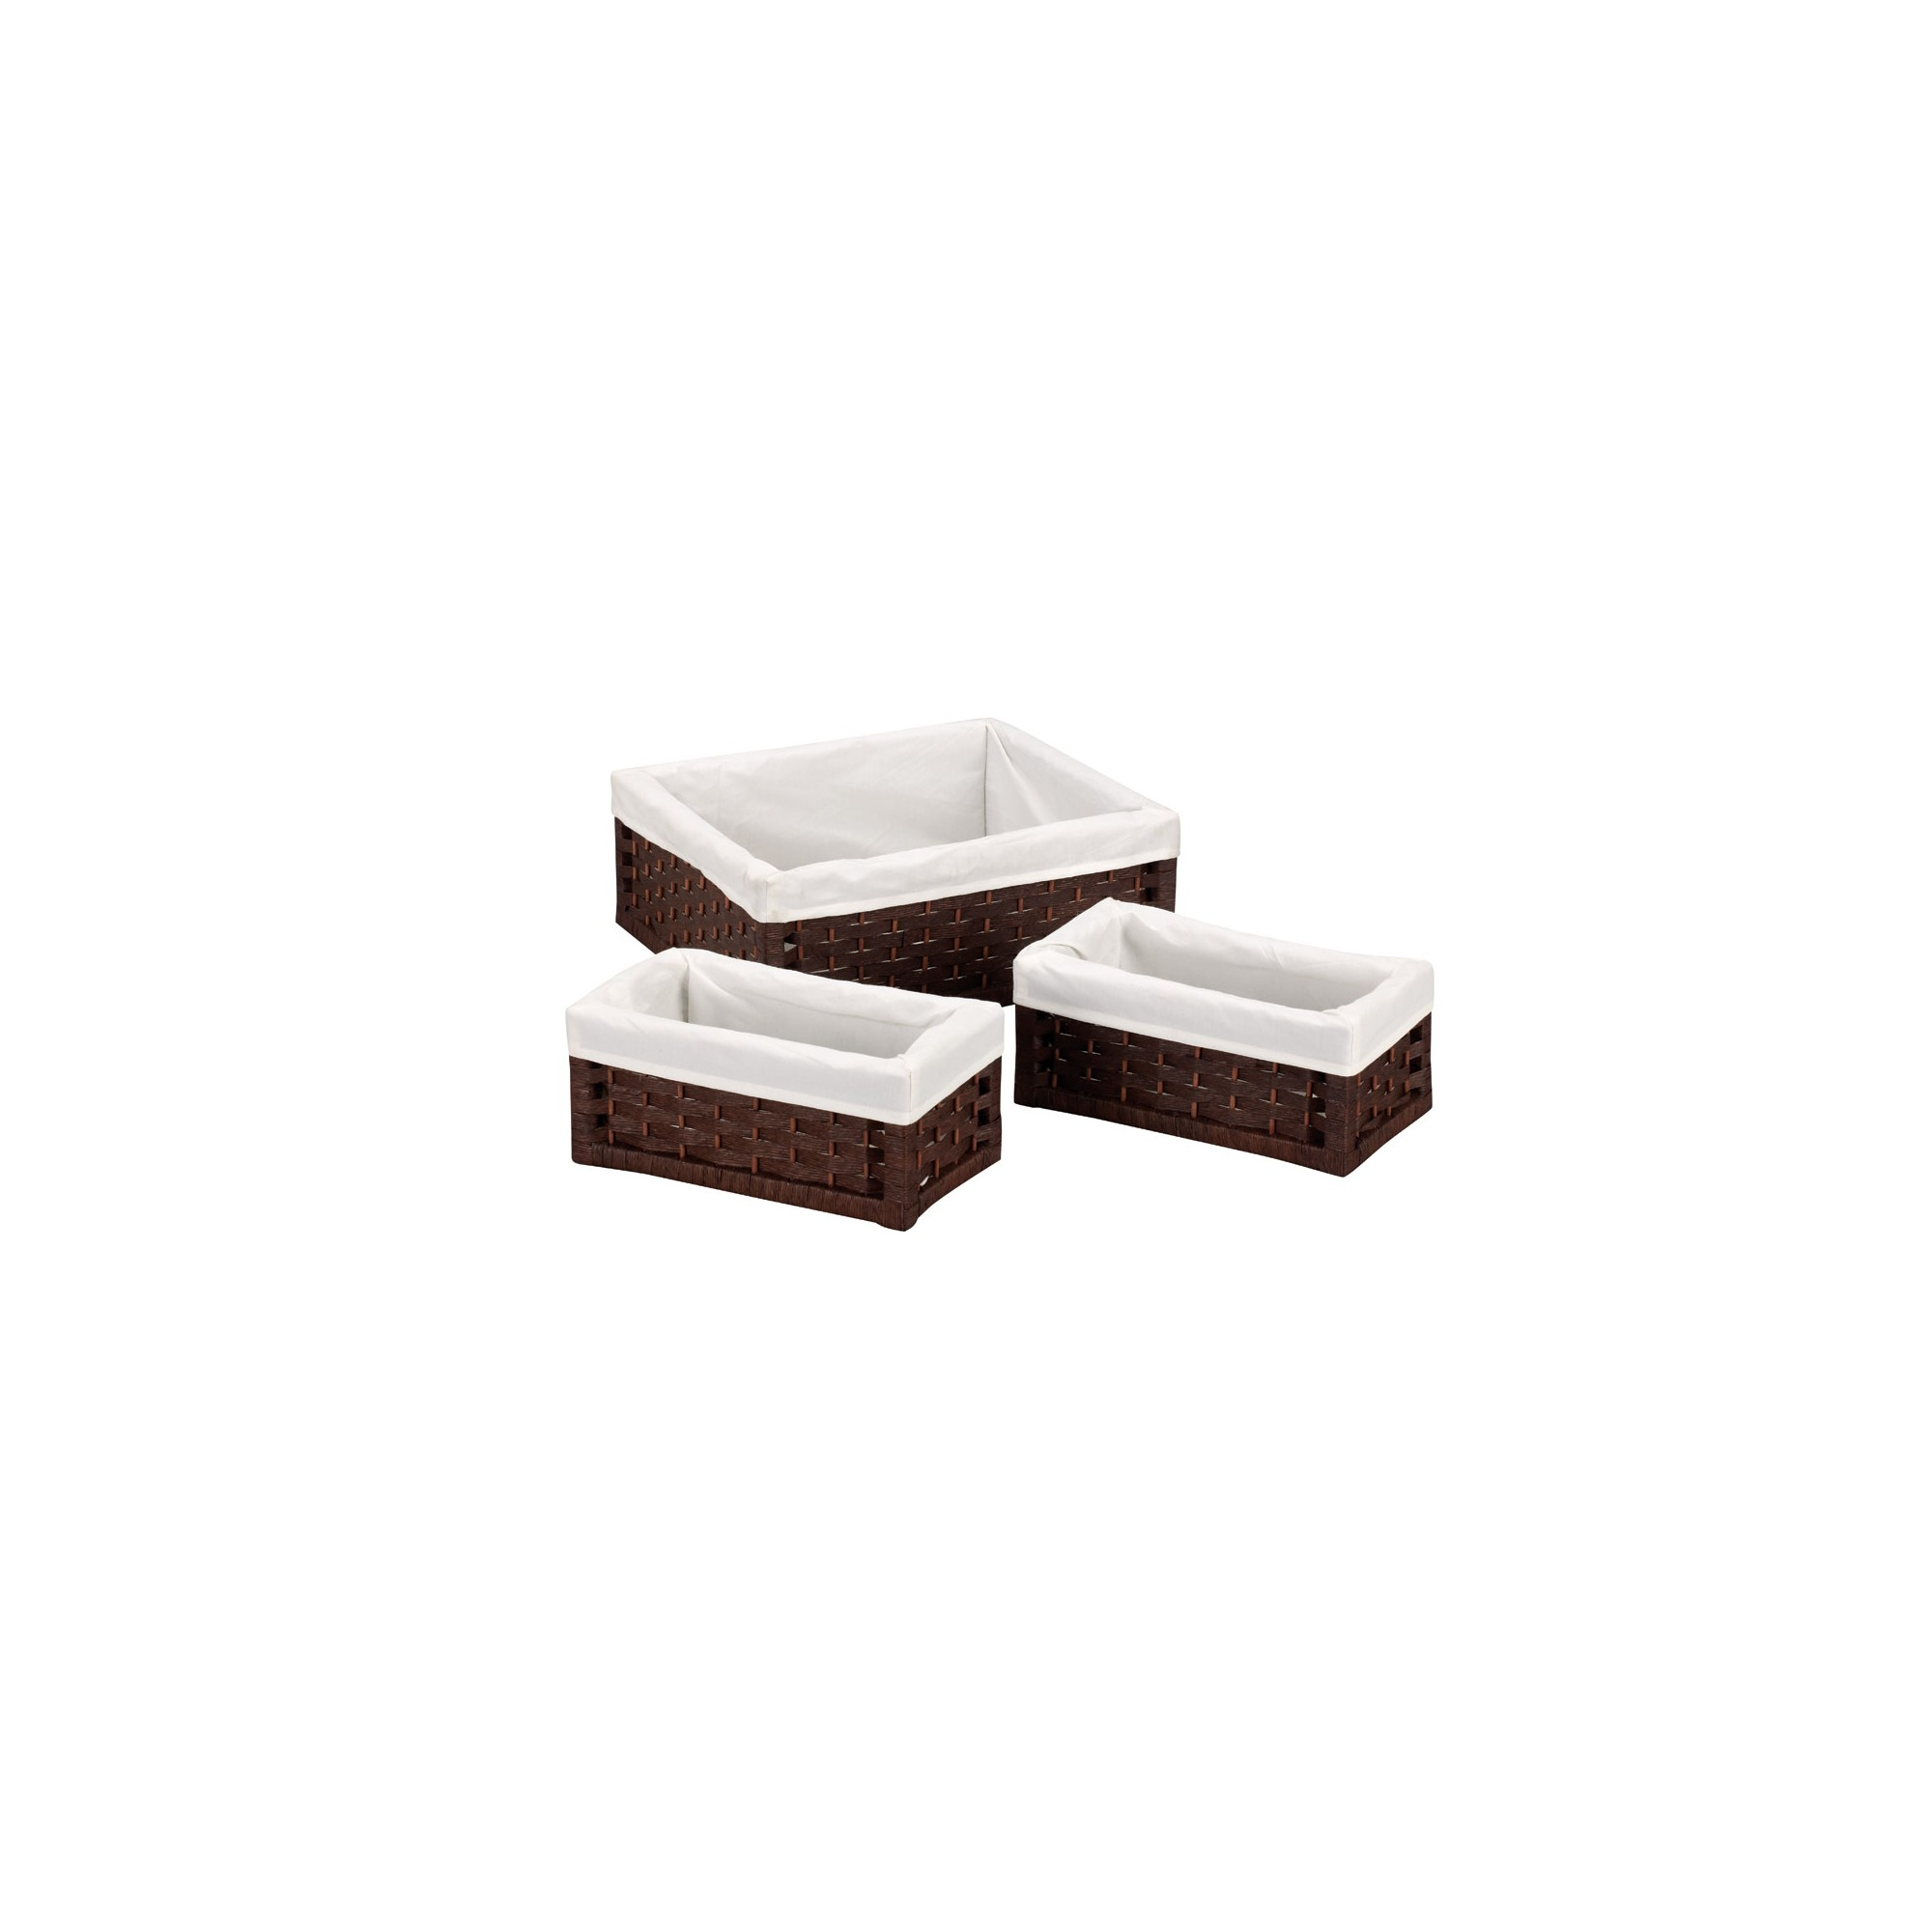 Household Essentials Set of 3 Large Stained Utility Baskets